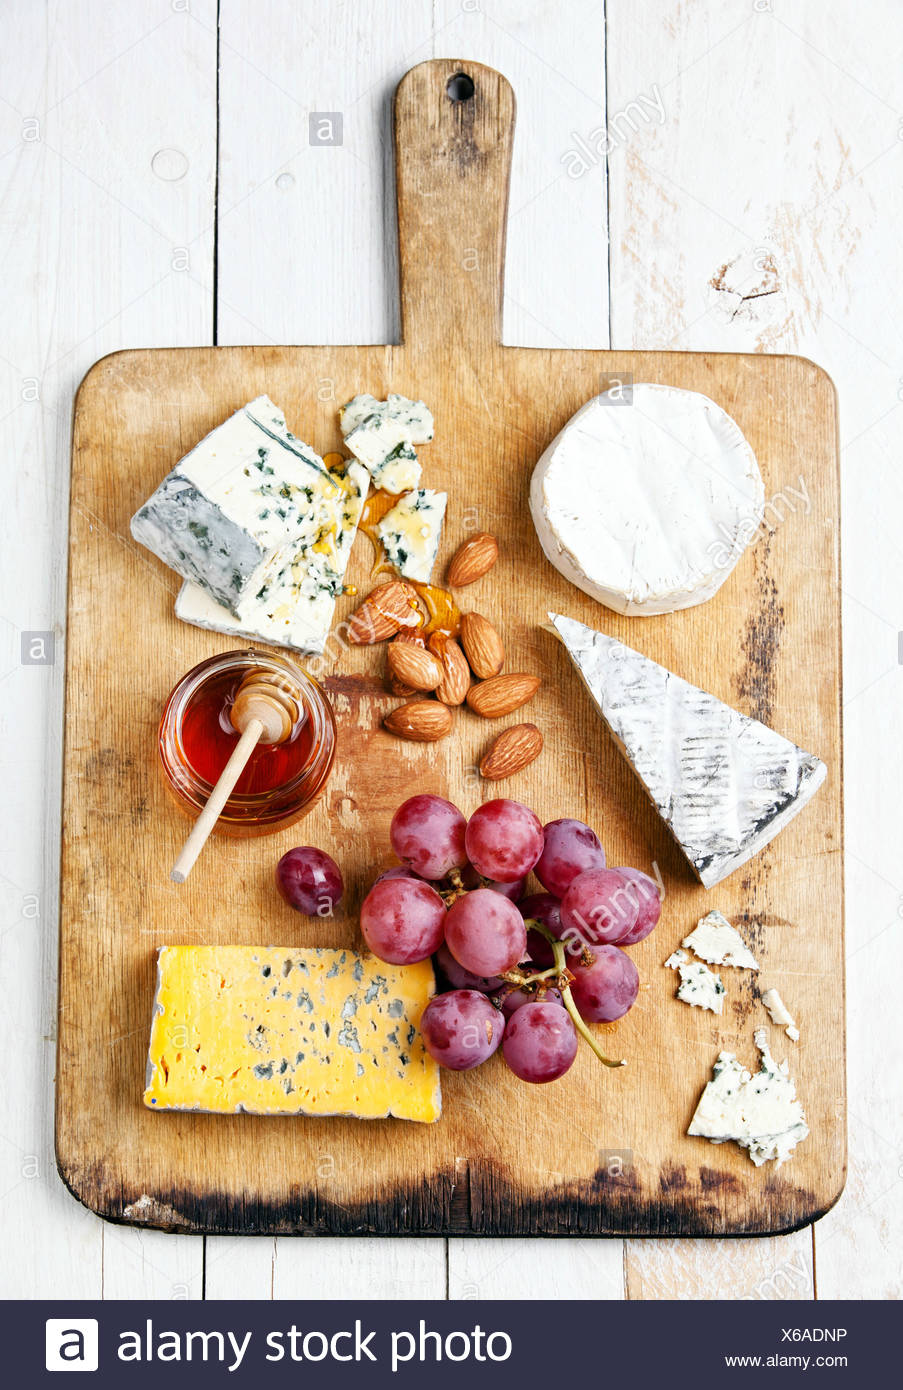 Assortment of various types of cheese on wooden board - Stock Image